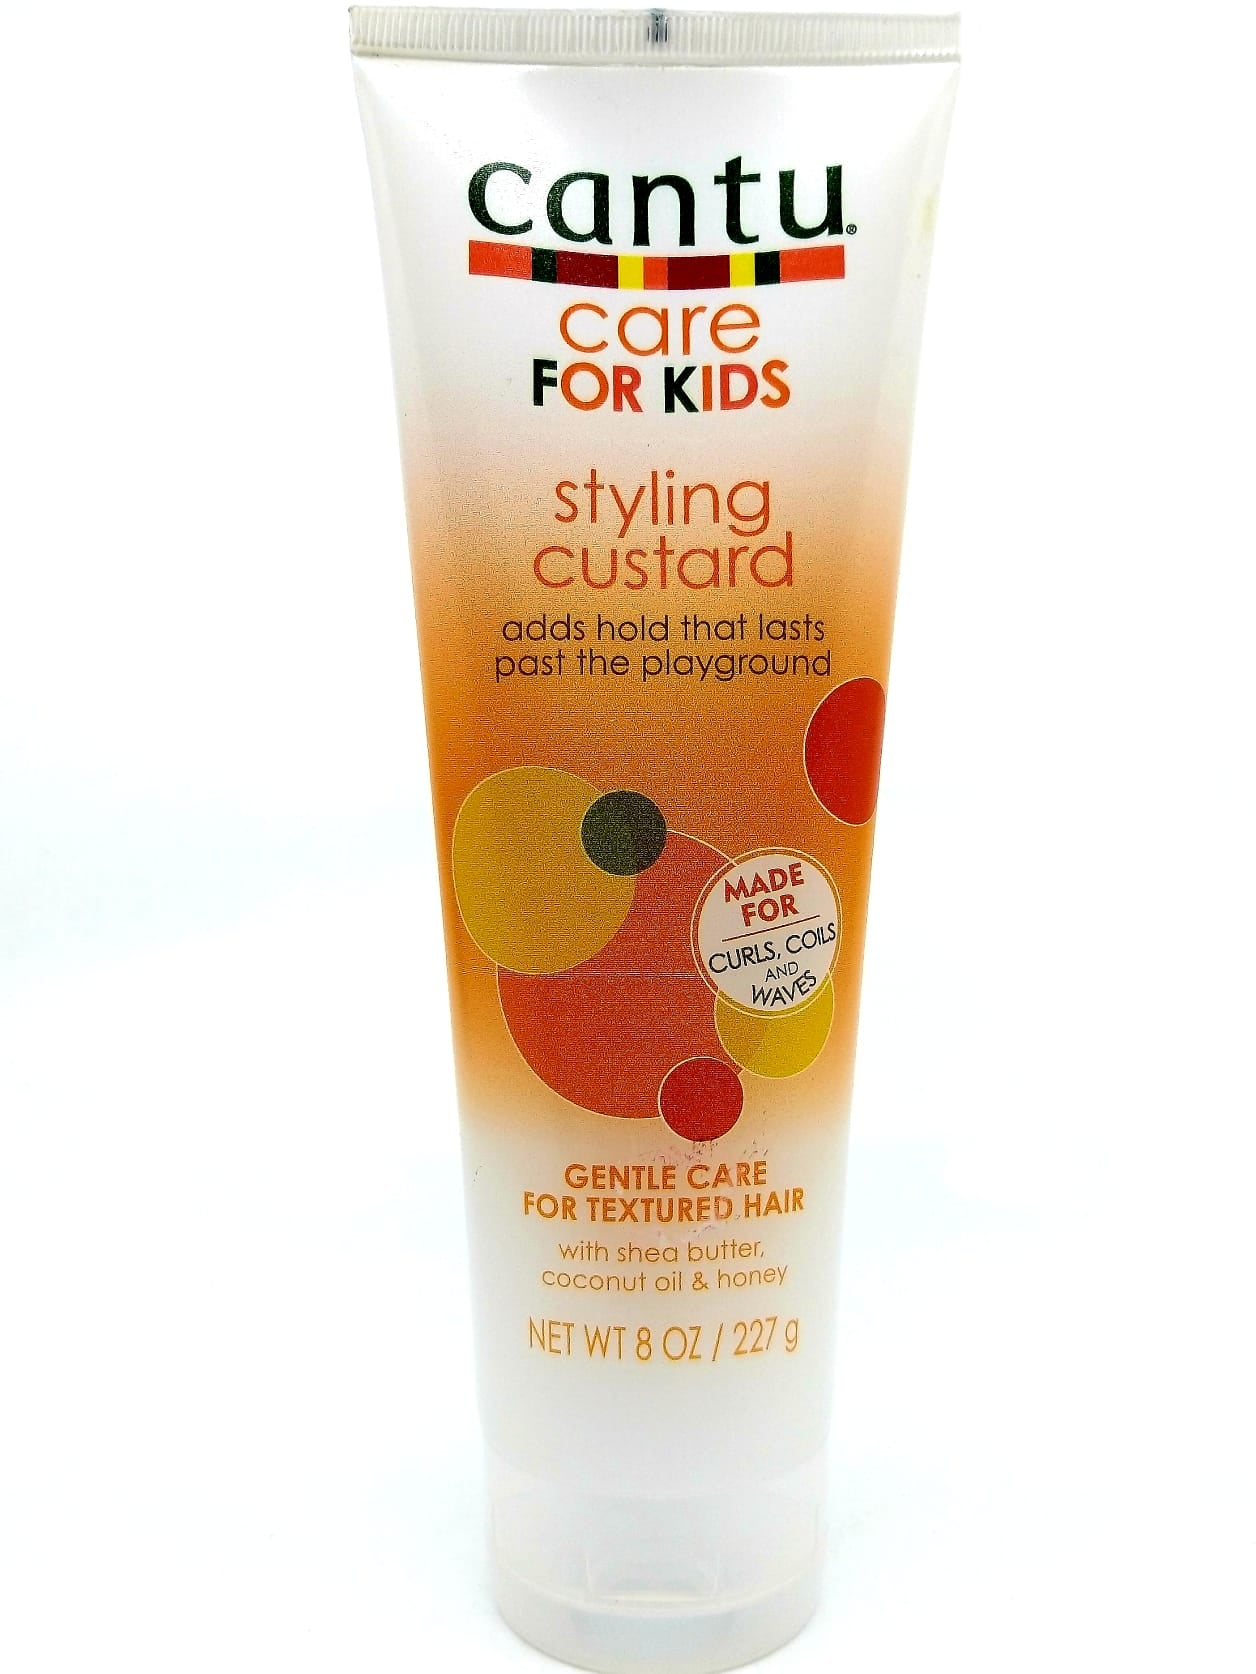 Cantu care for kids styling custard